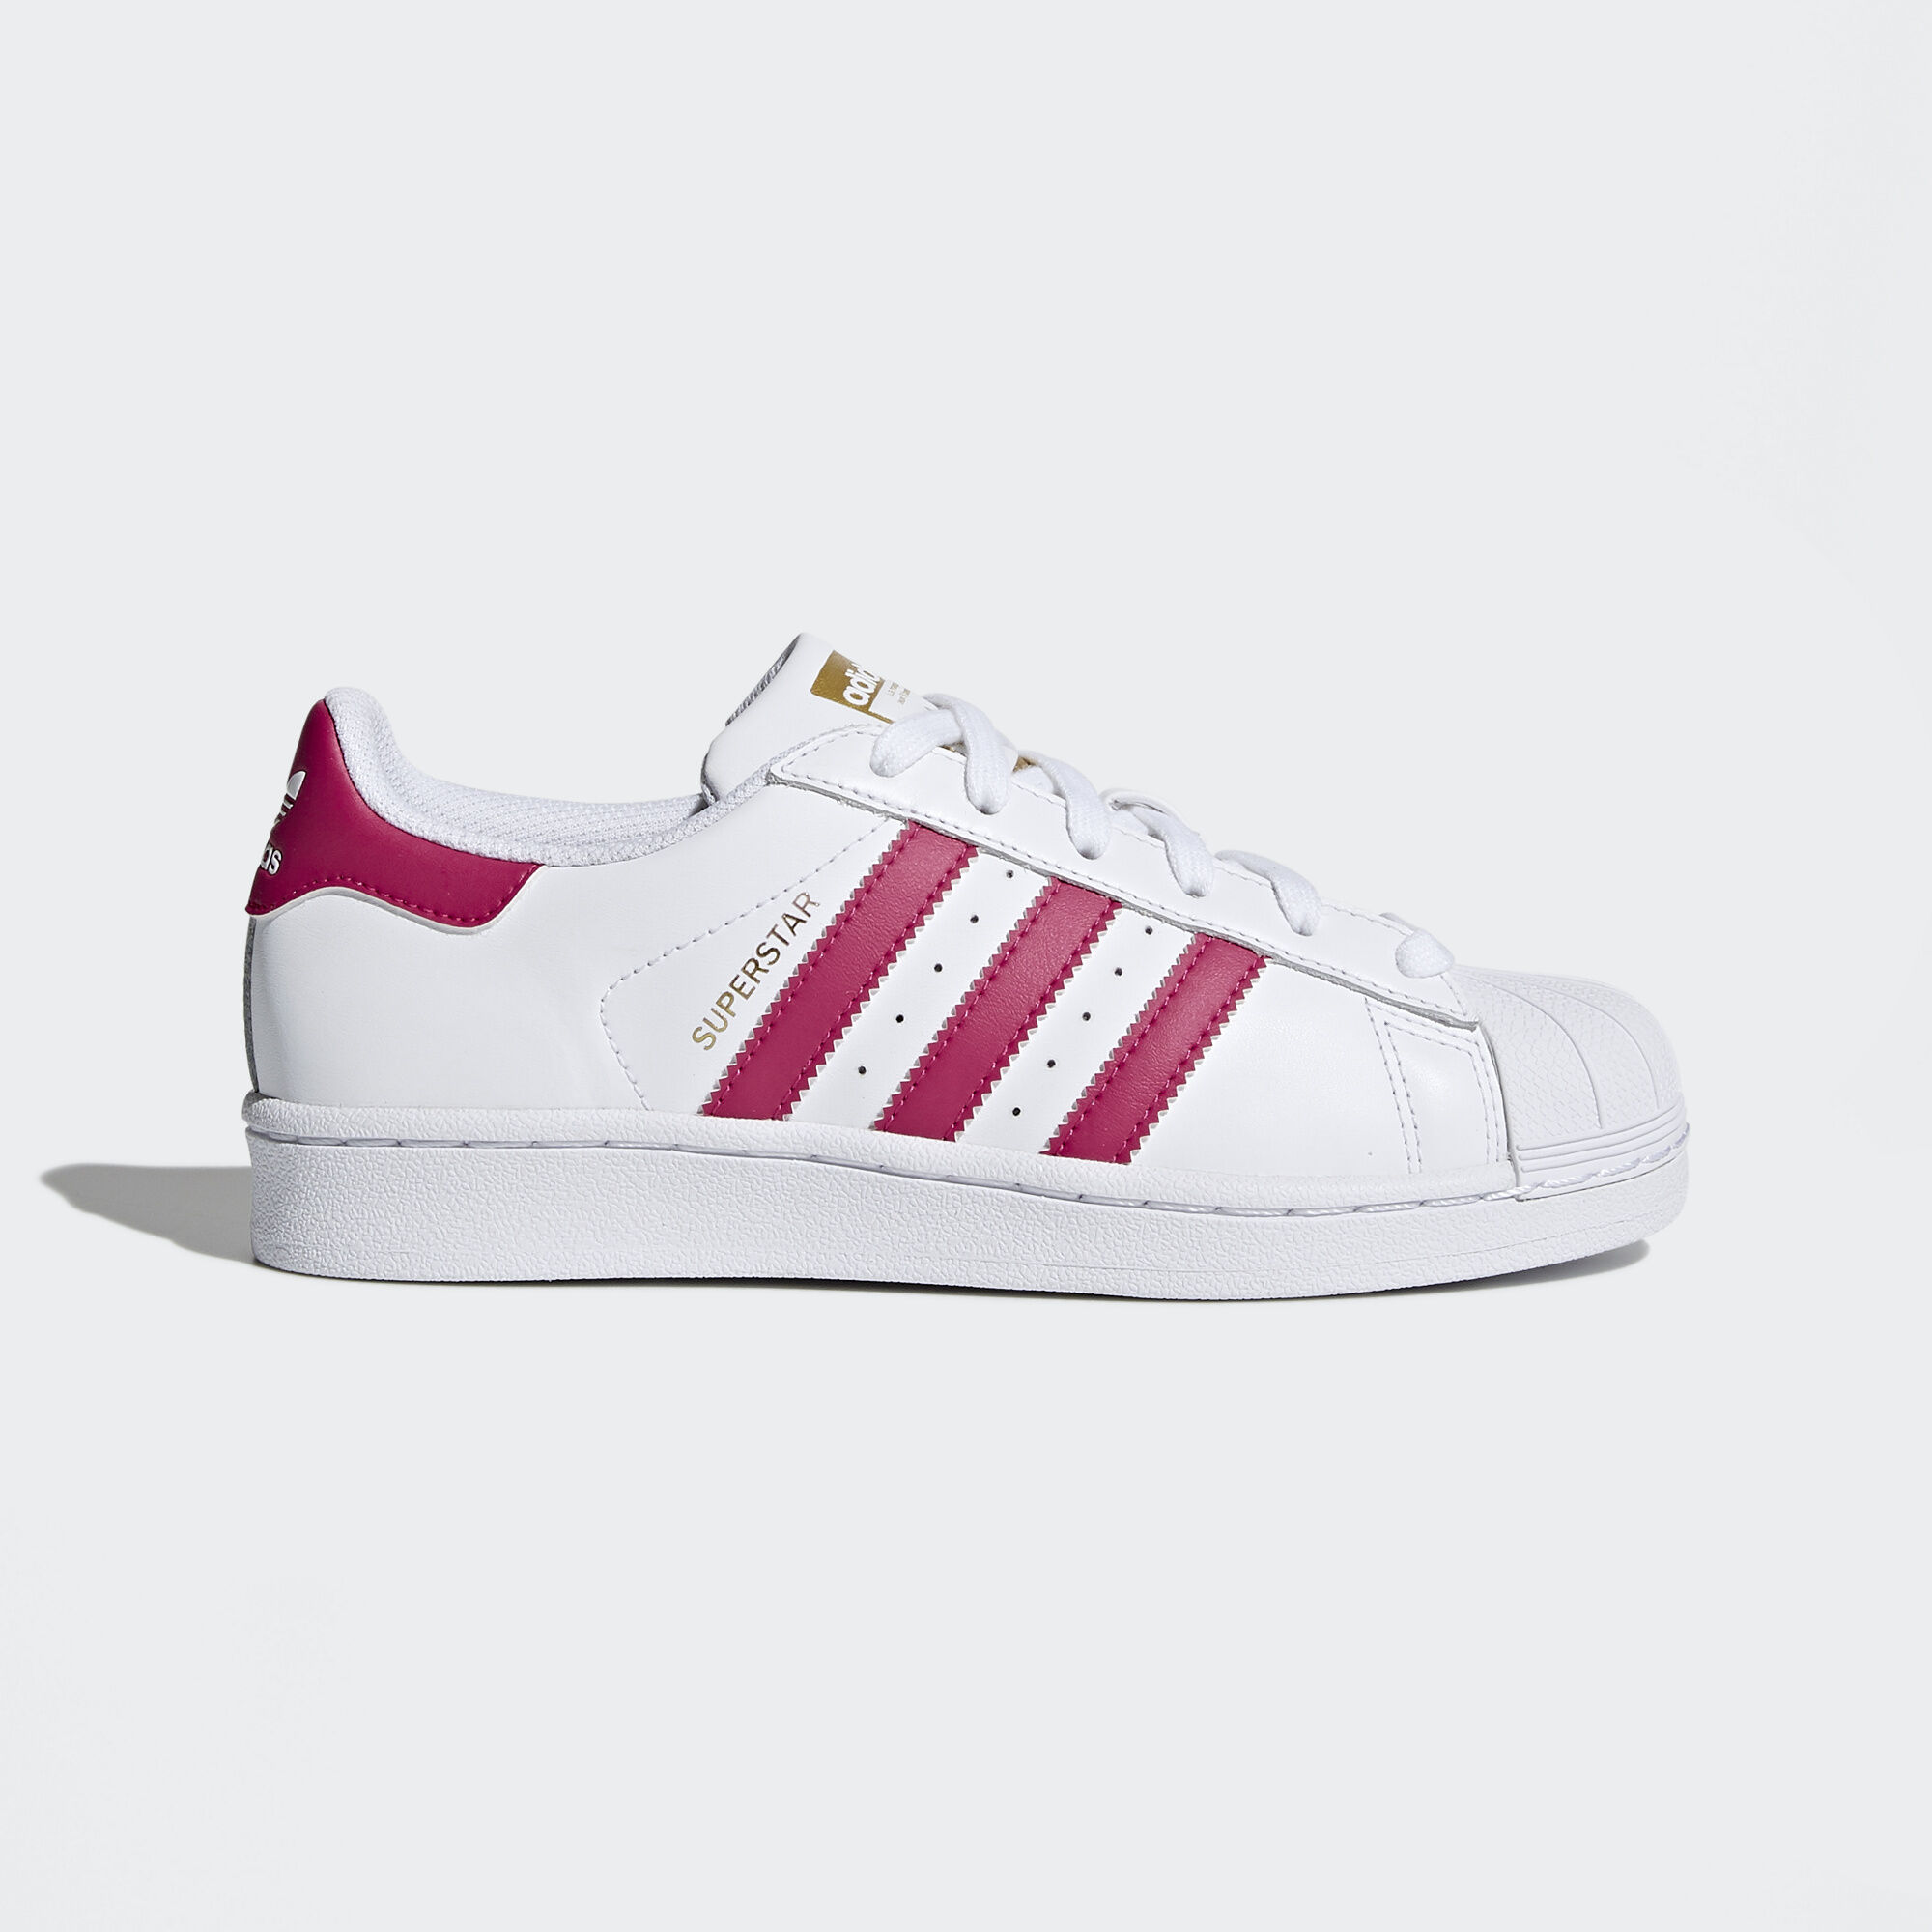 adidas superstar is